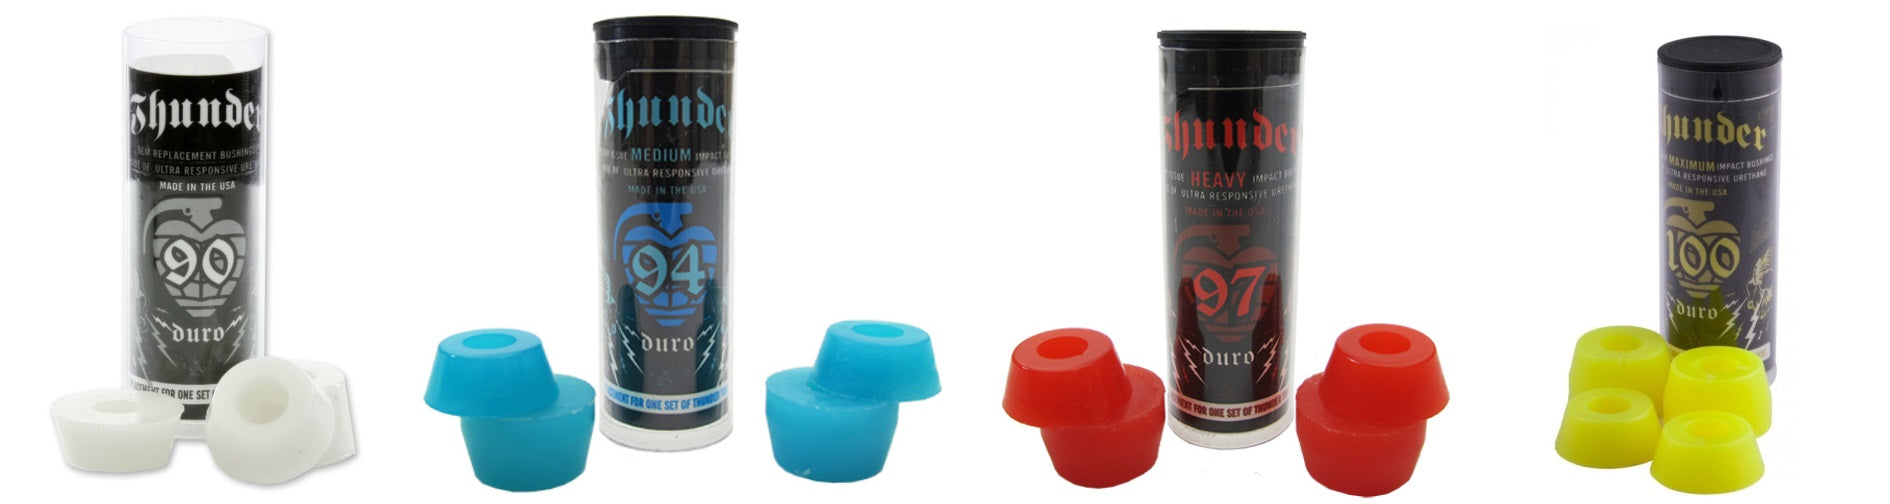 Thunder Bushings